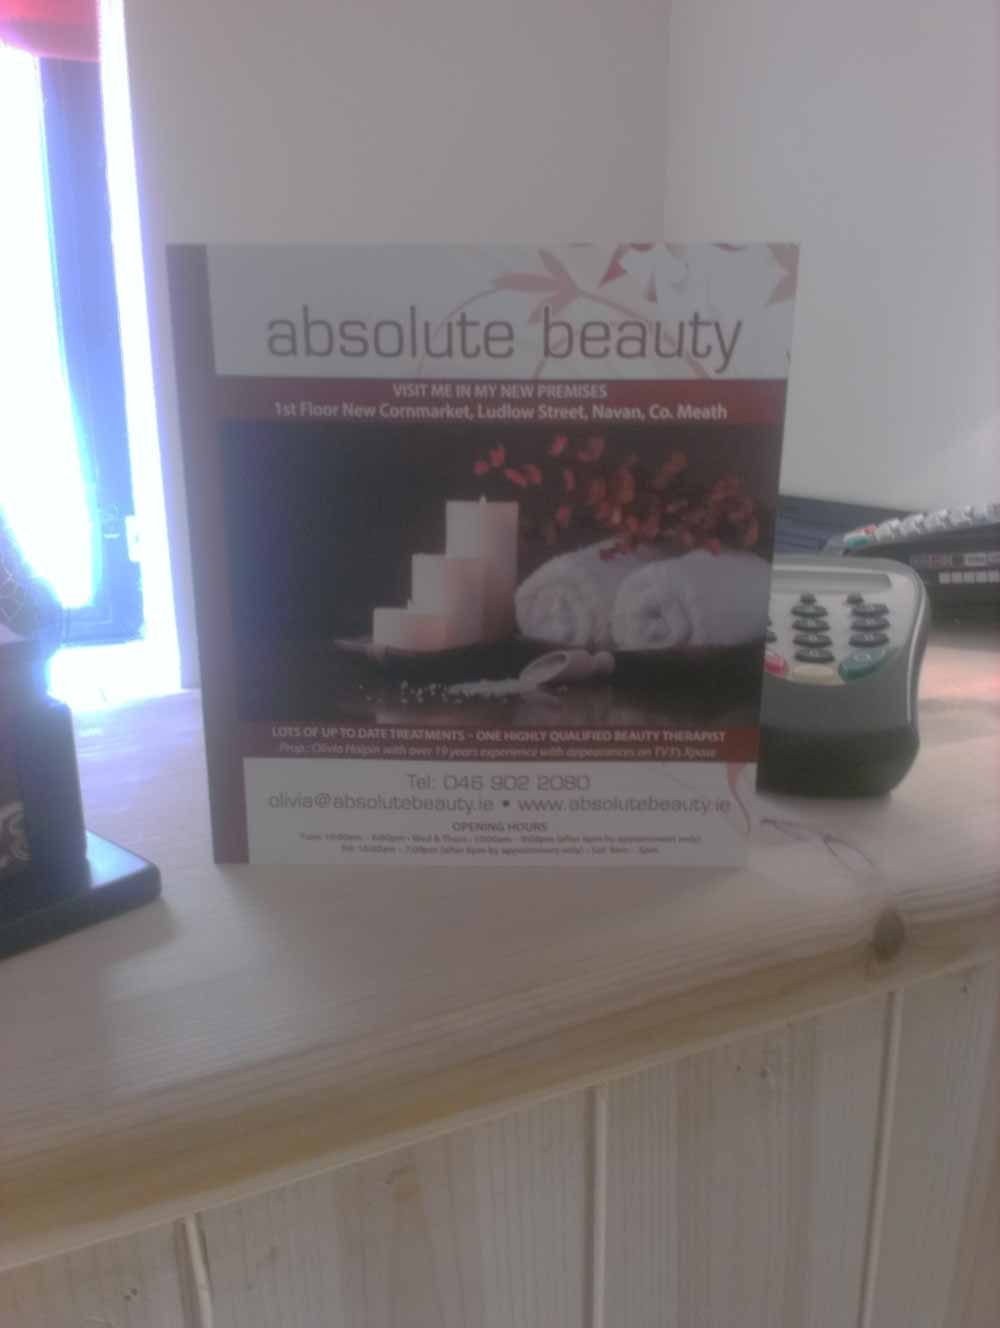 Absolute Beauty - Beauty Salon Navan, Co. MEath - Nails, Waxing, Beauty Therapy, Holistic Treatments